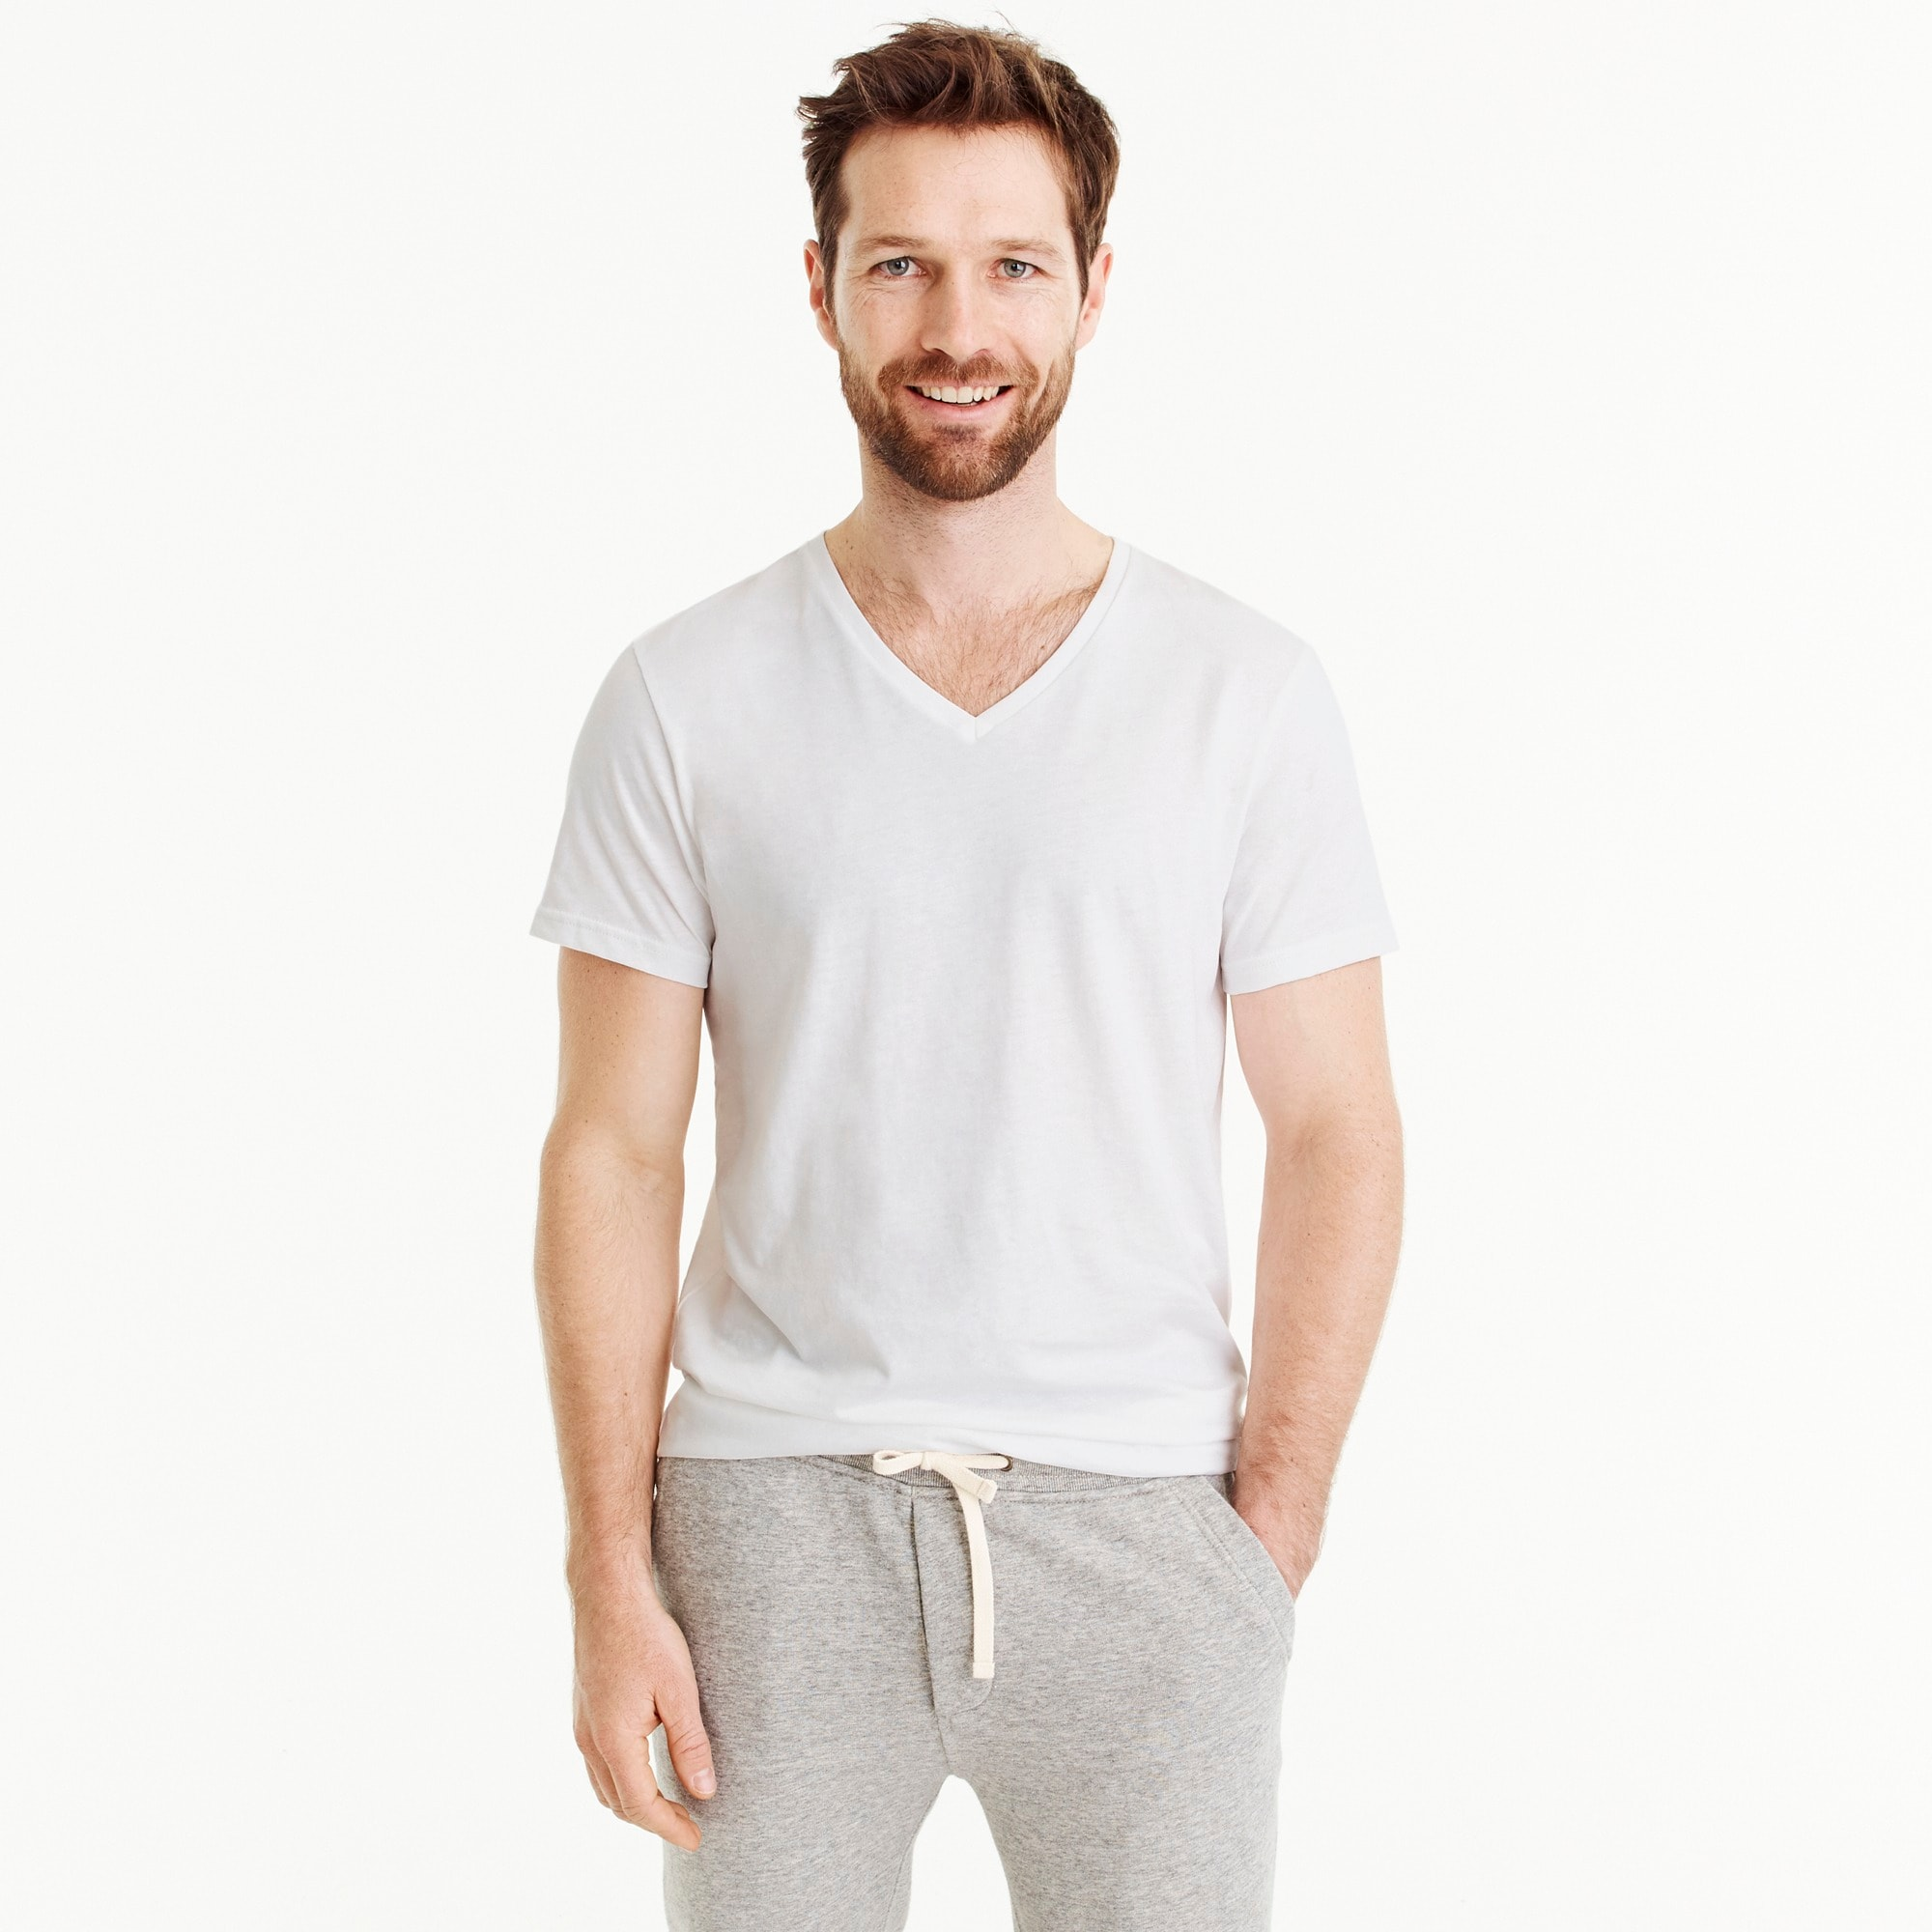 mens White V-neck undershirt